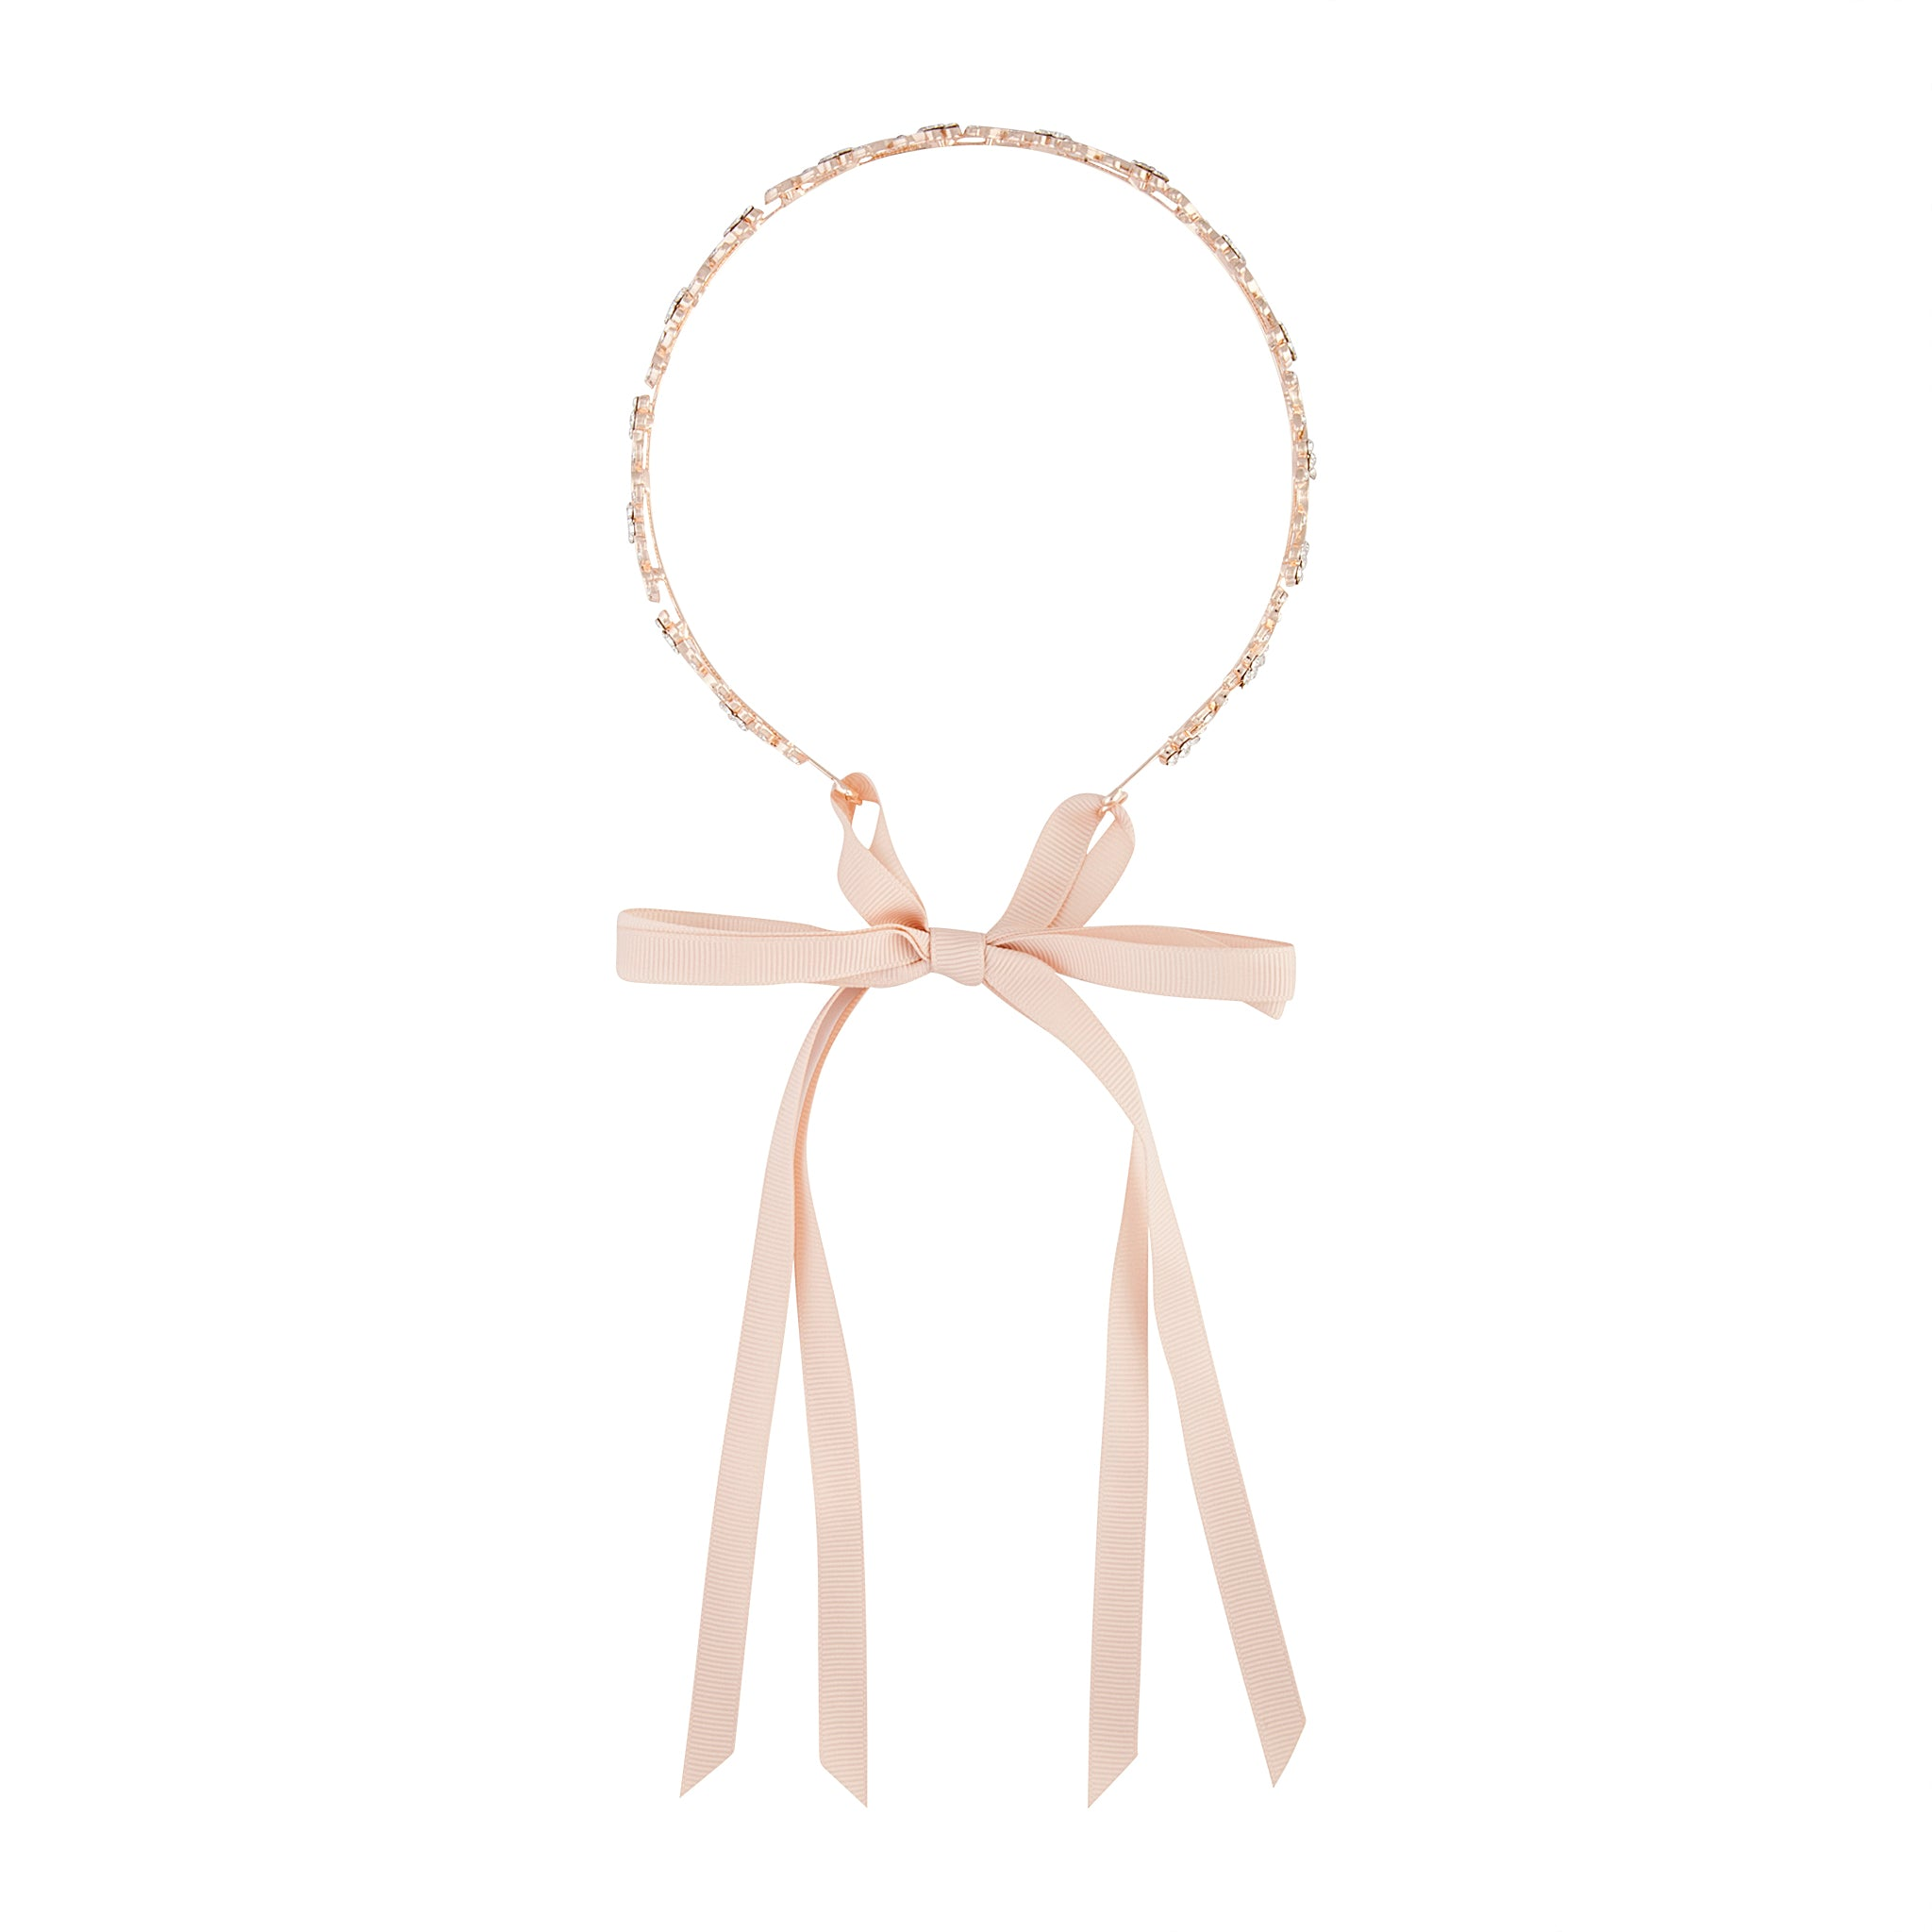 Rose Gold Diamante Leaf Tie Headband